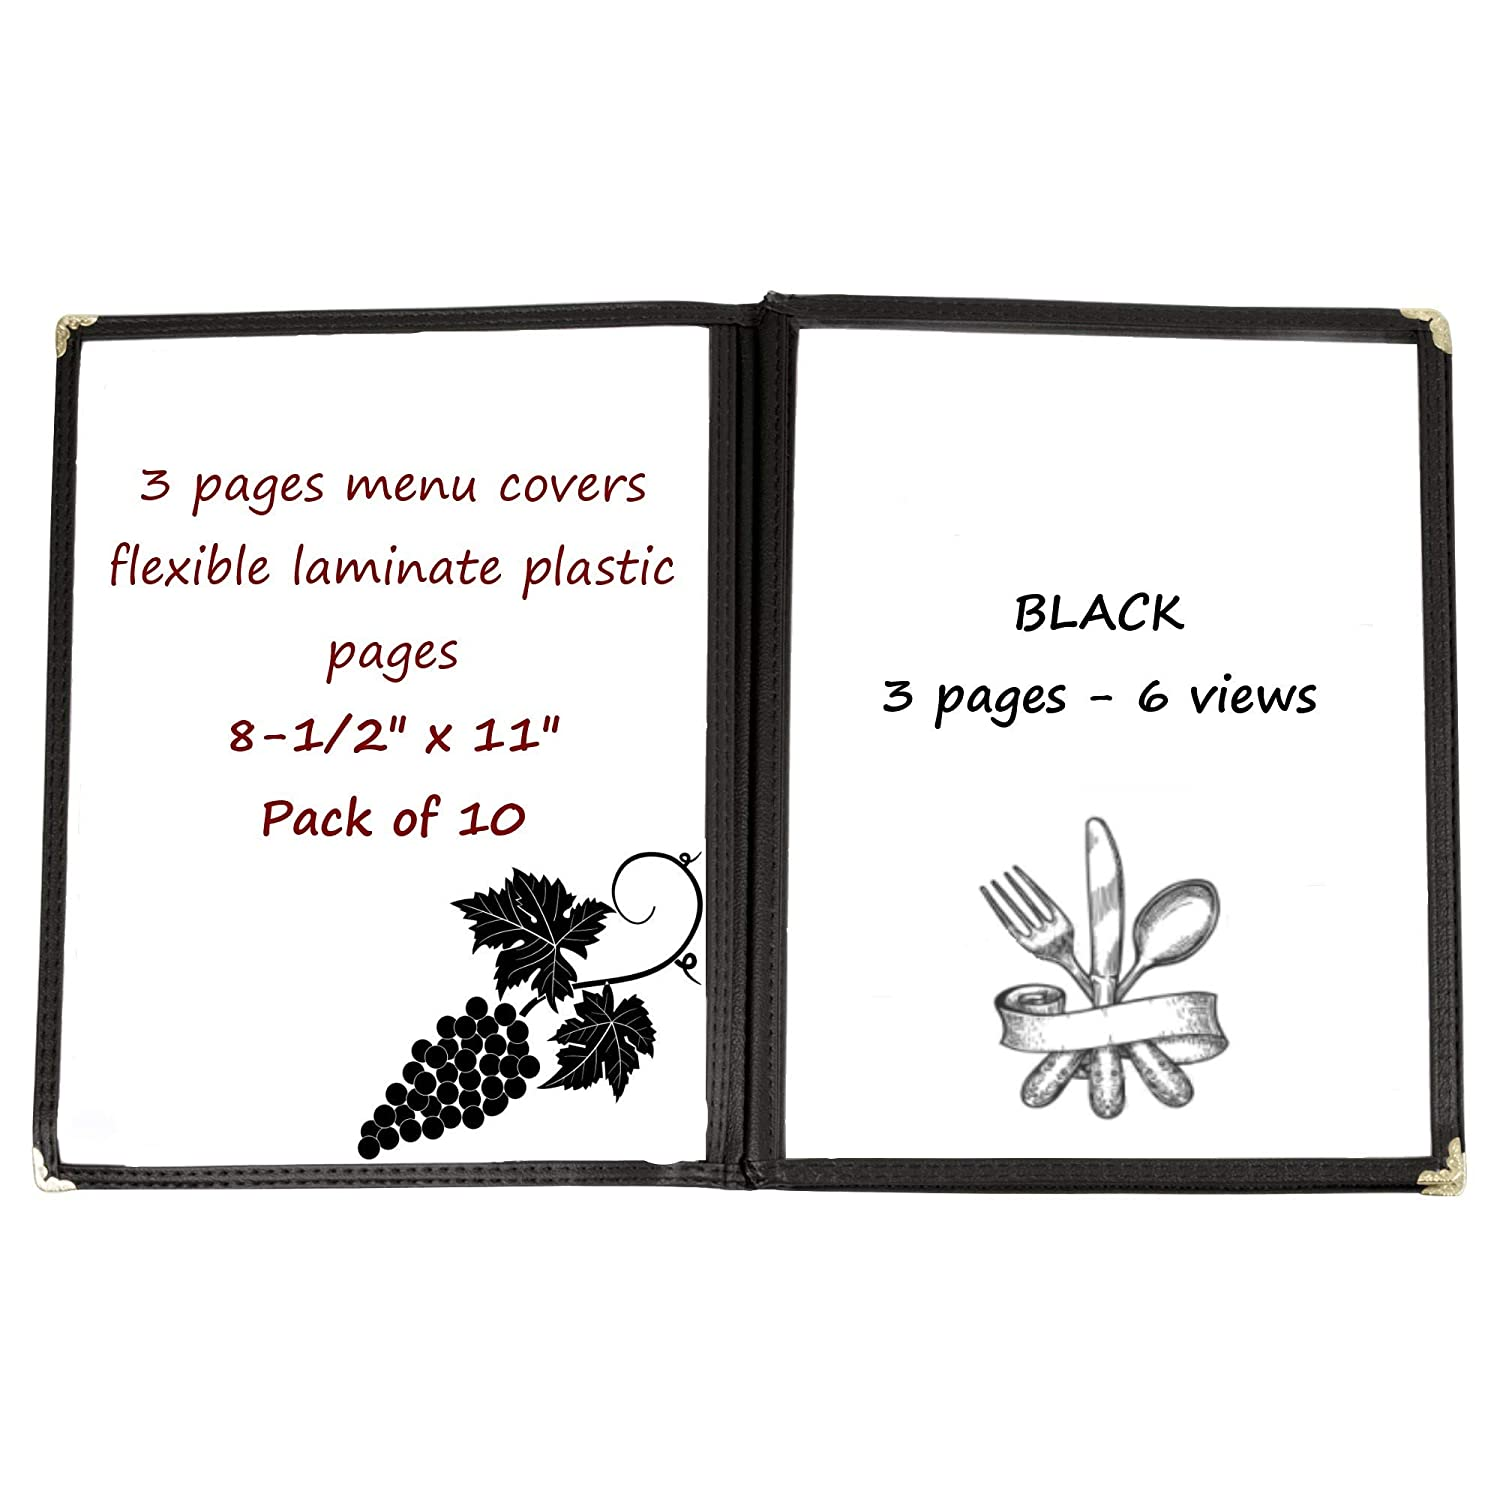 10-PCS 3-Pages Black Menu Covers Laminate Plastic Restaurant Menu Covers Book Fold Stitched with Gold Decorative Corners Commercial Quality Size 8-1//2 x 11